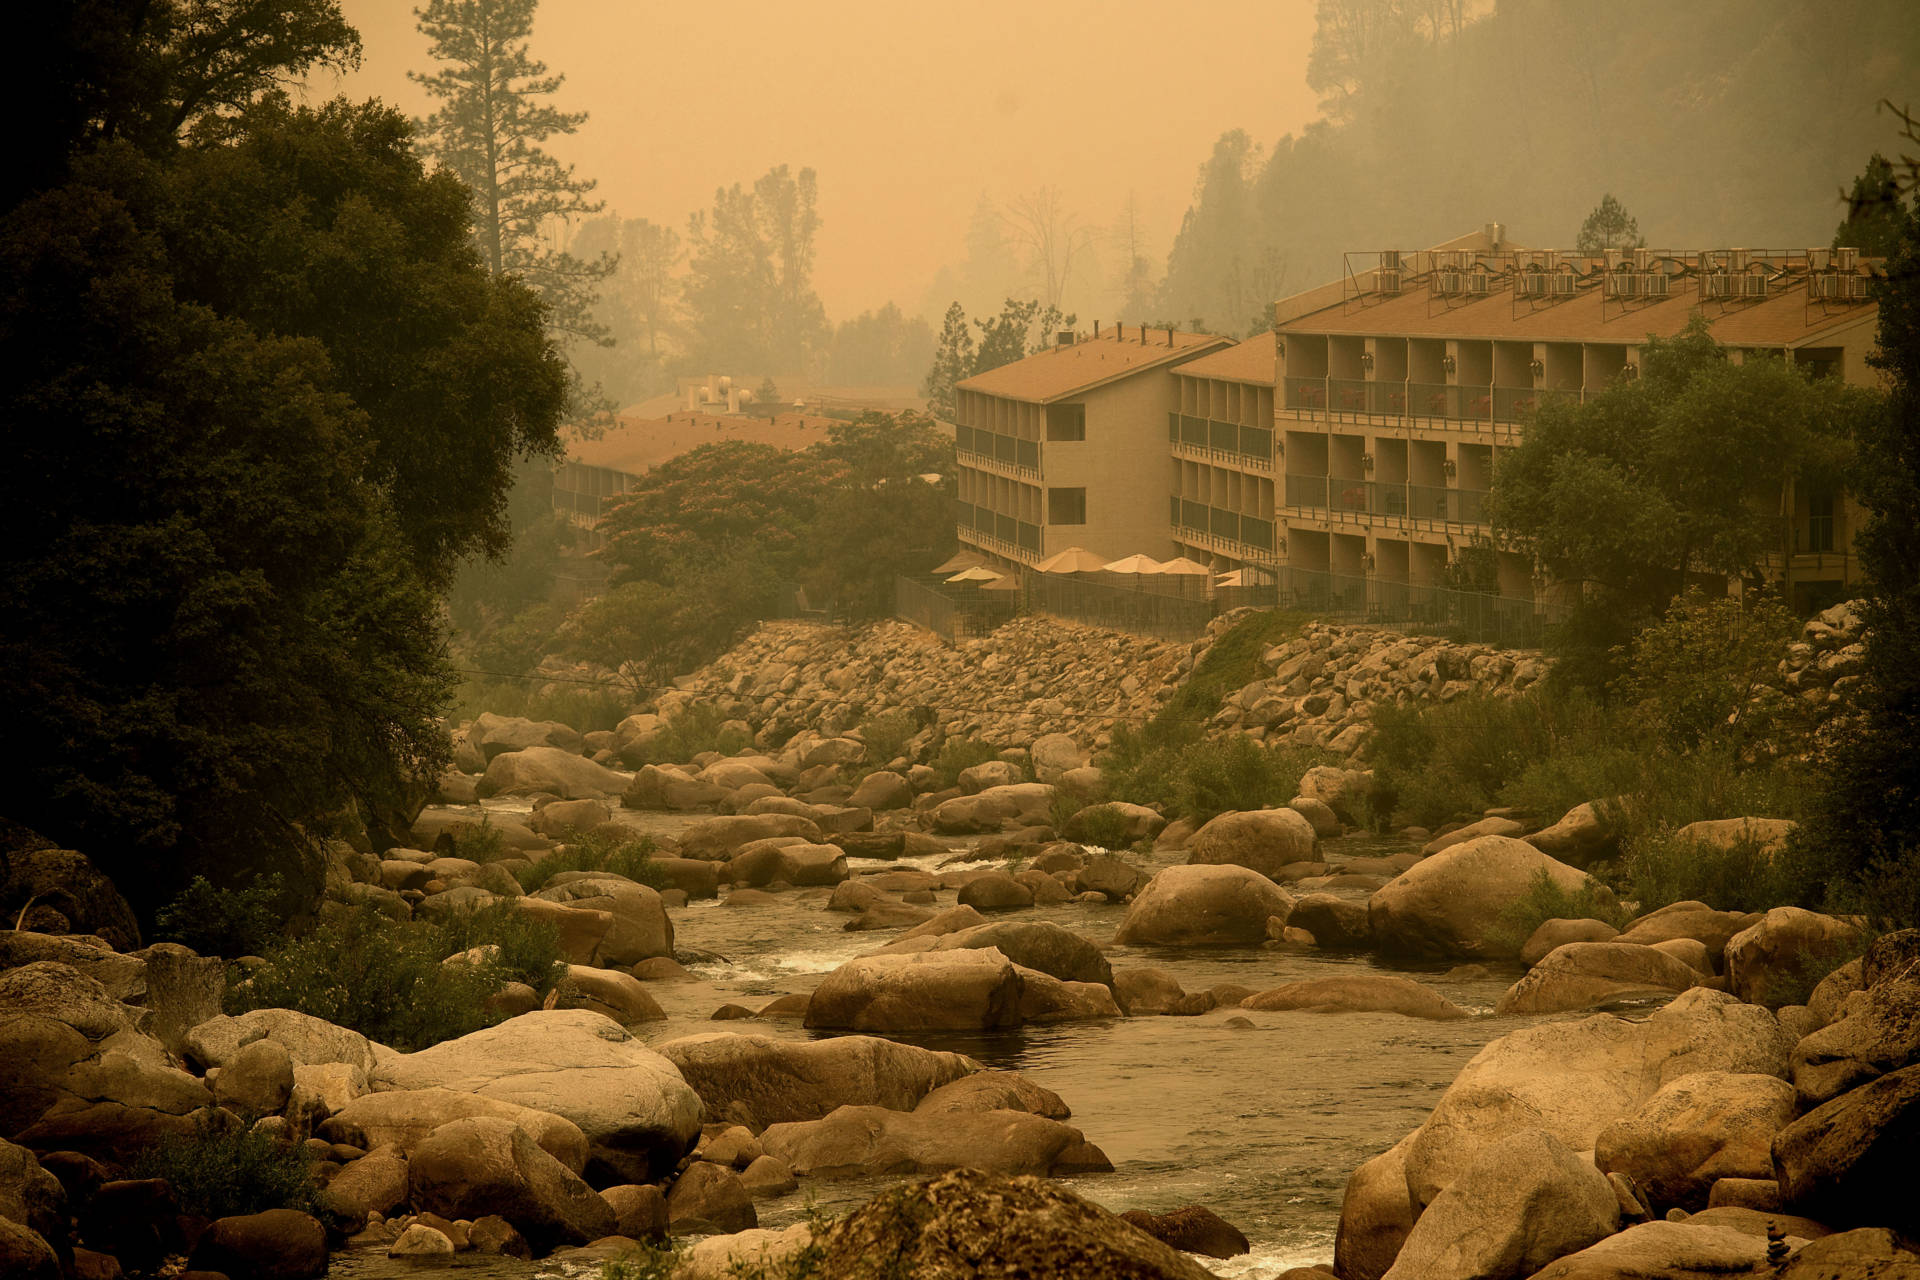 The Yosemite View Lodge in El Portal was shrouded in smoke at the end of July, during the peak of the Ferguson fire.  NOAH BERGER/AFP/Getty Images